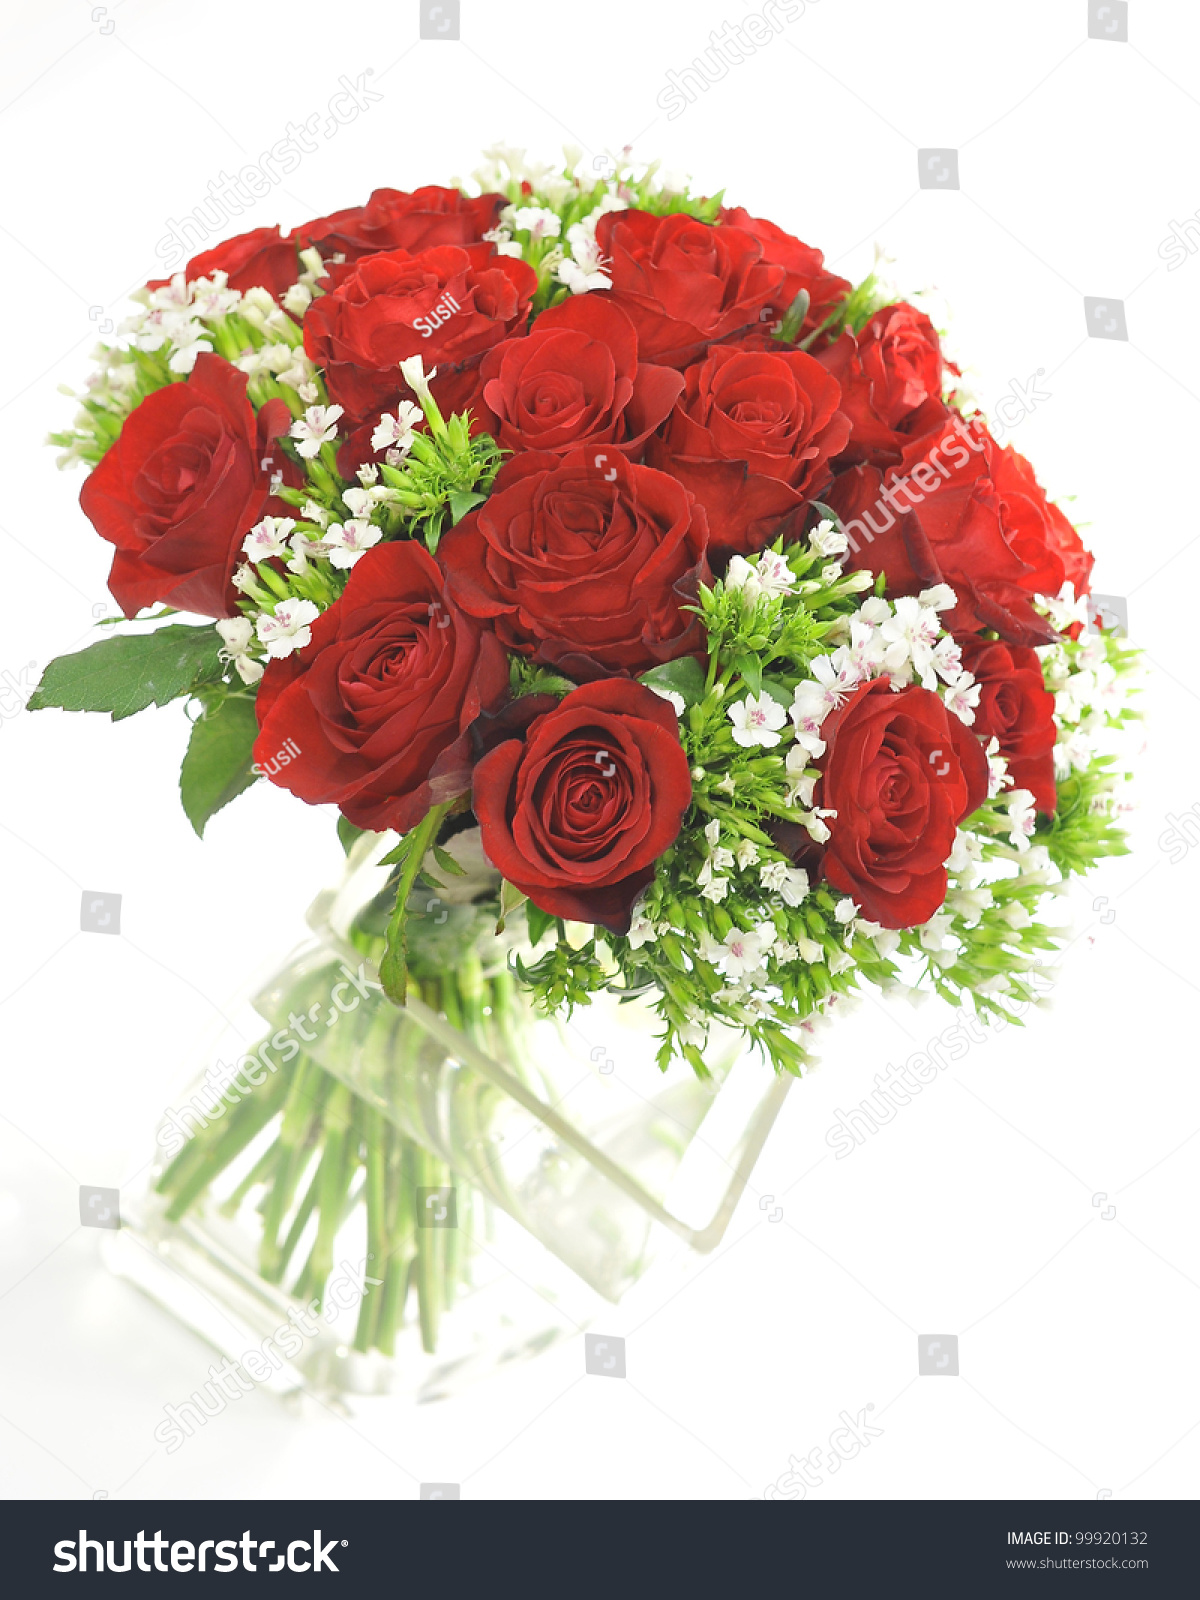 Red Rose Small White Flower Bouquet Stock Photo (Edit Now) 99920132 ...